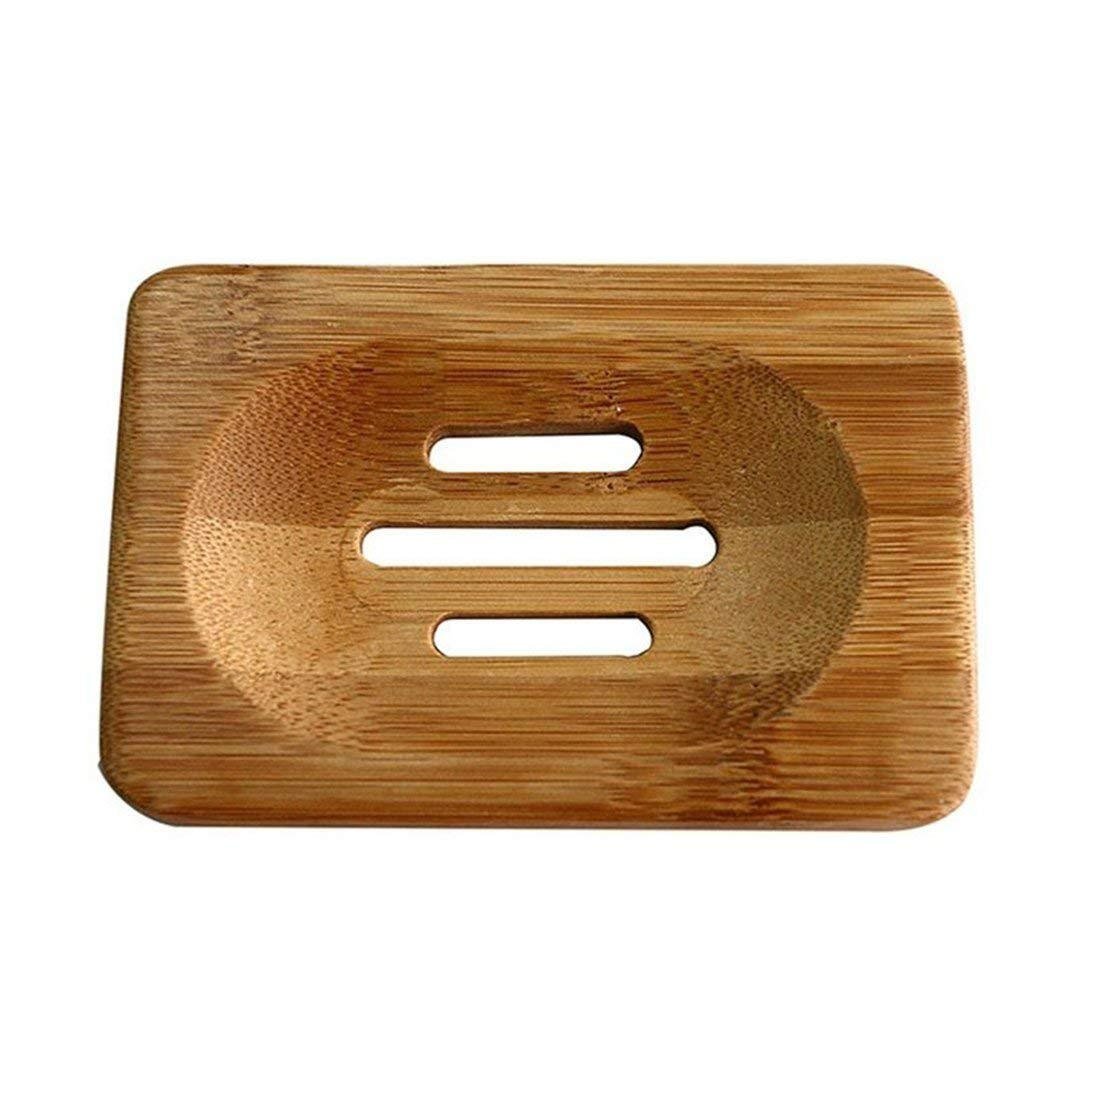 Ma.Lina Cute Natural Bamboo Soap Holder Dish Bathroom Shower Plate Stand Storage Wood Box